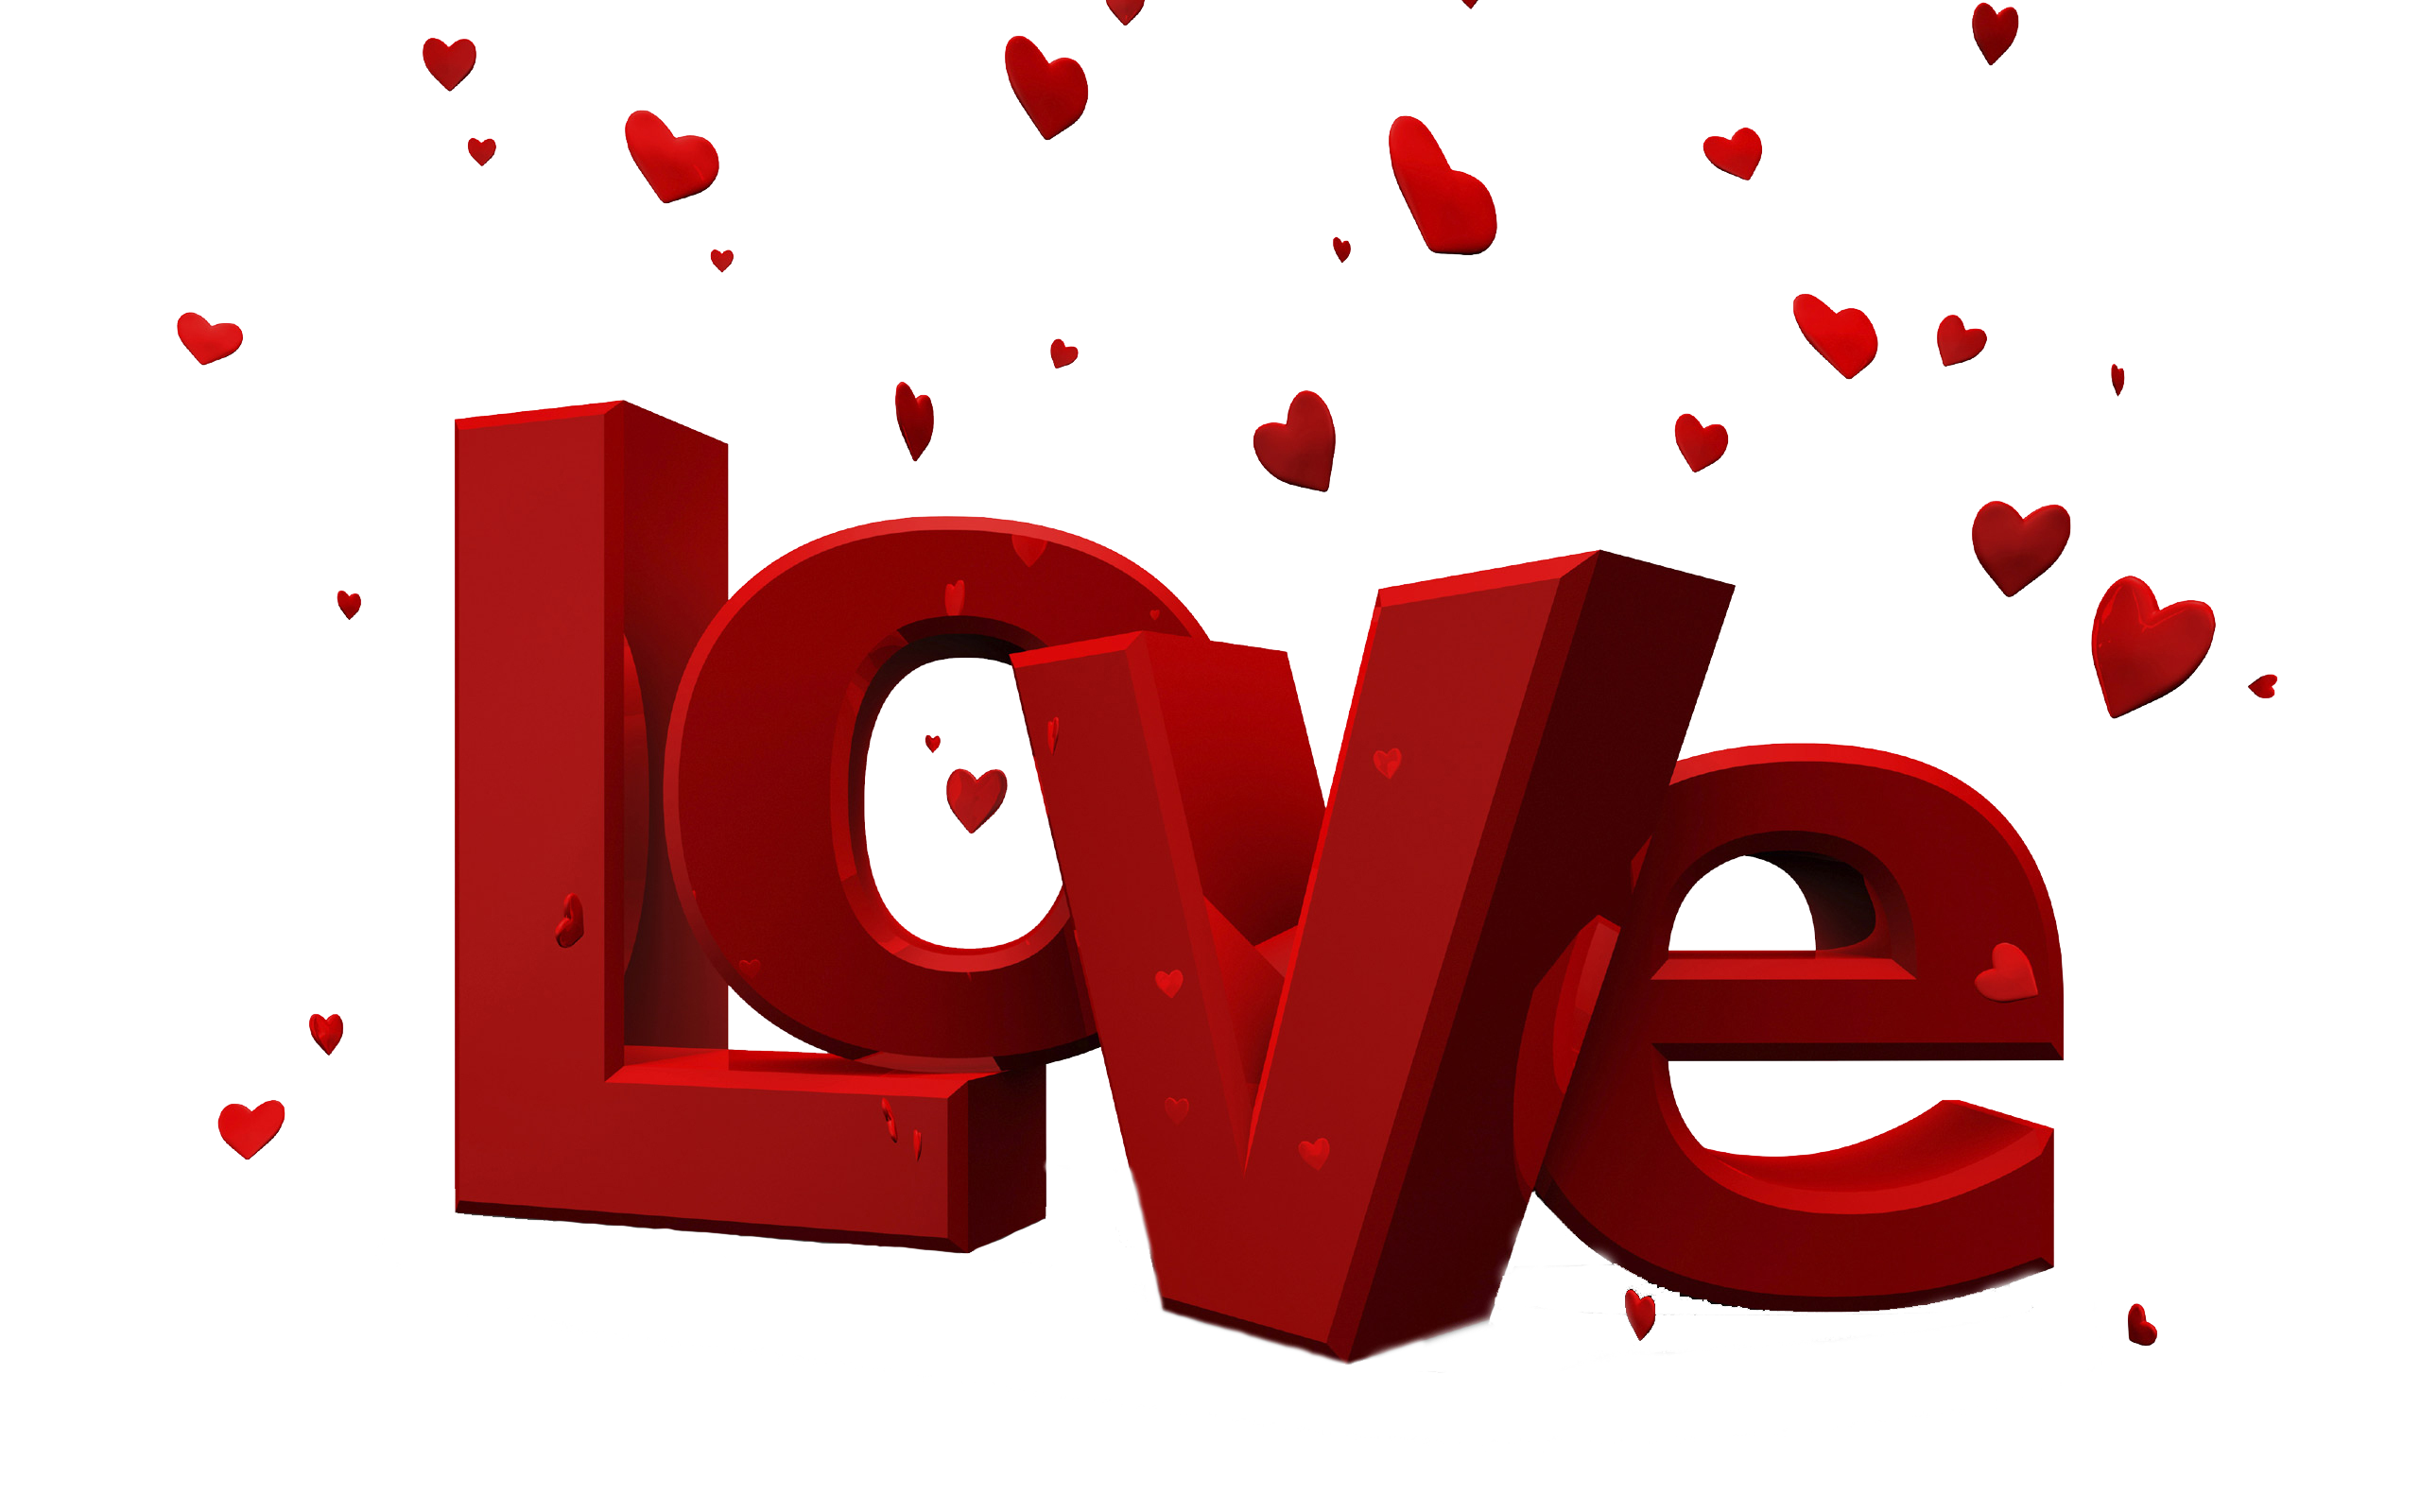 Download love free png photo images and clipart freepngimg love download png png image thecheapjerseys Image collections